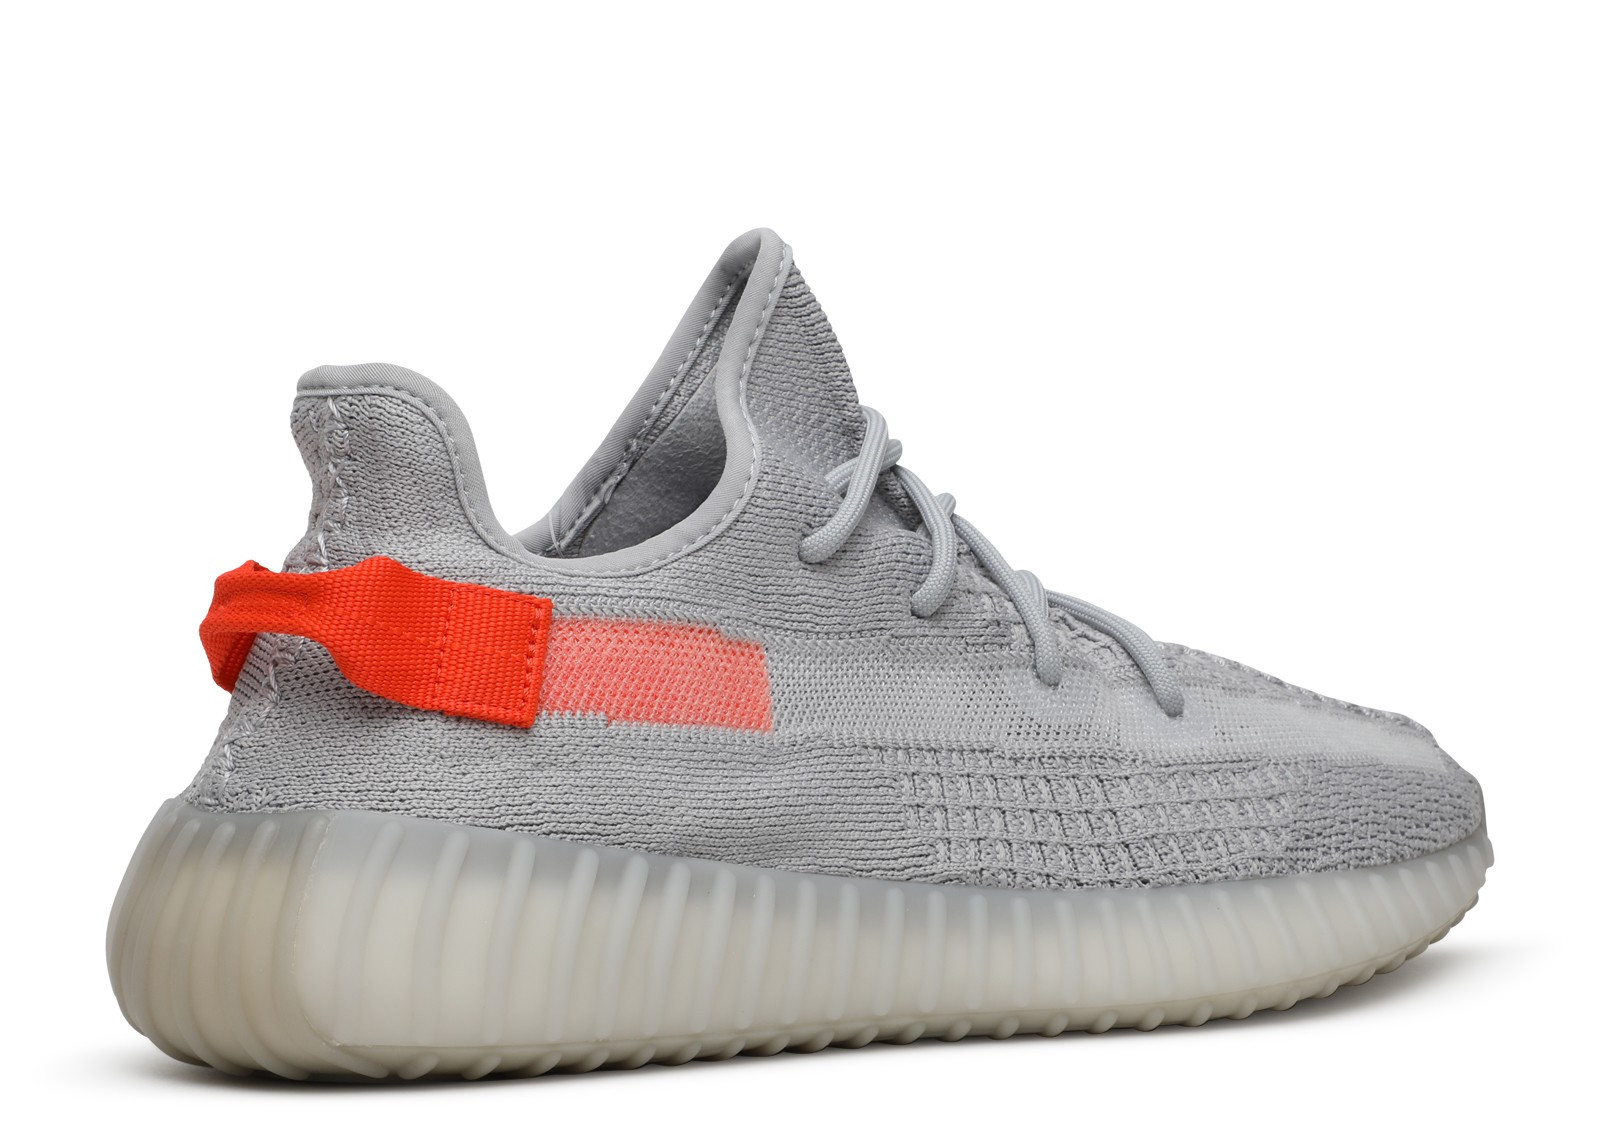 YEEZY BOOST 350 V2 TAIL LIGHT image 3